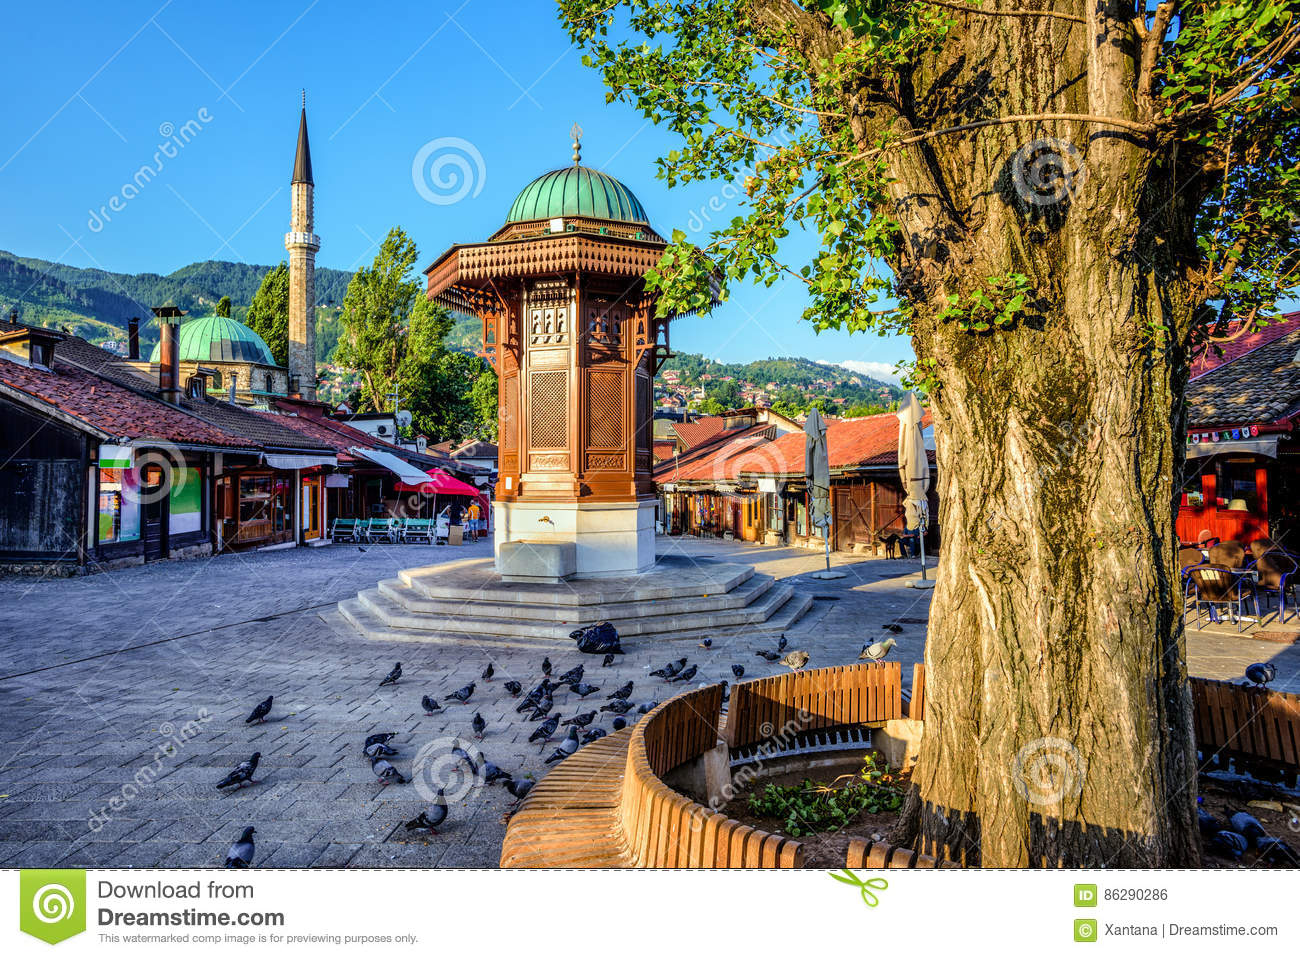 Sebilj fountain in the Old Town of Sarajevo, Bosnia